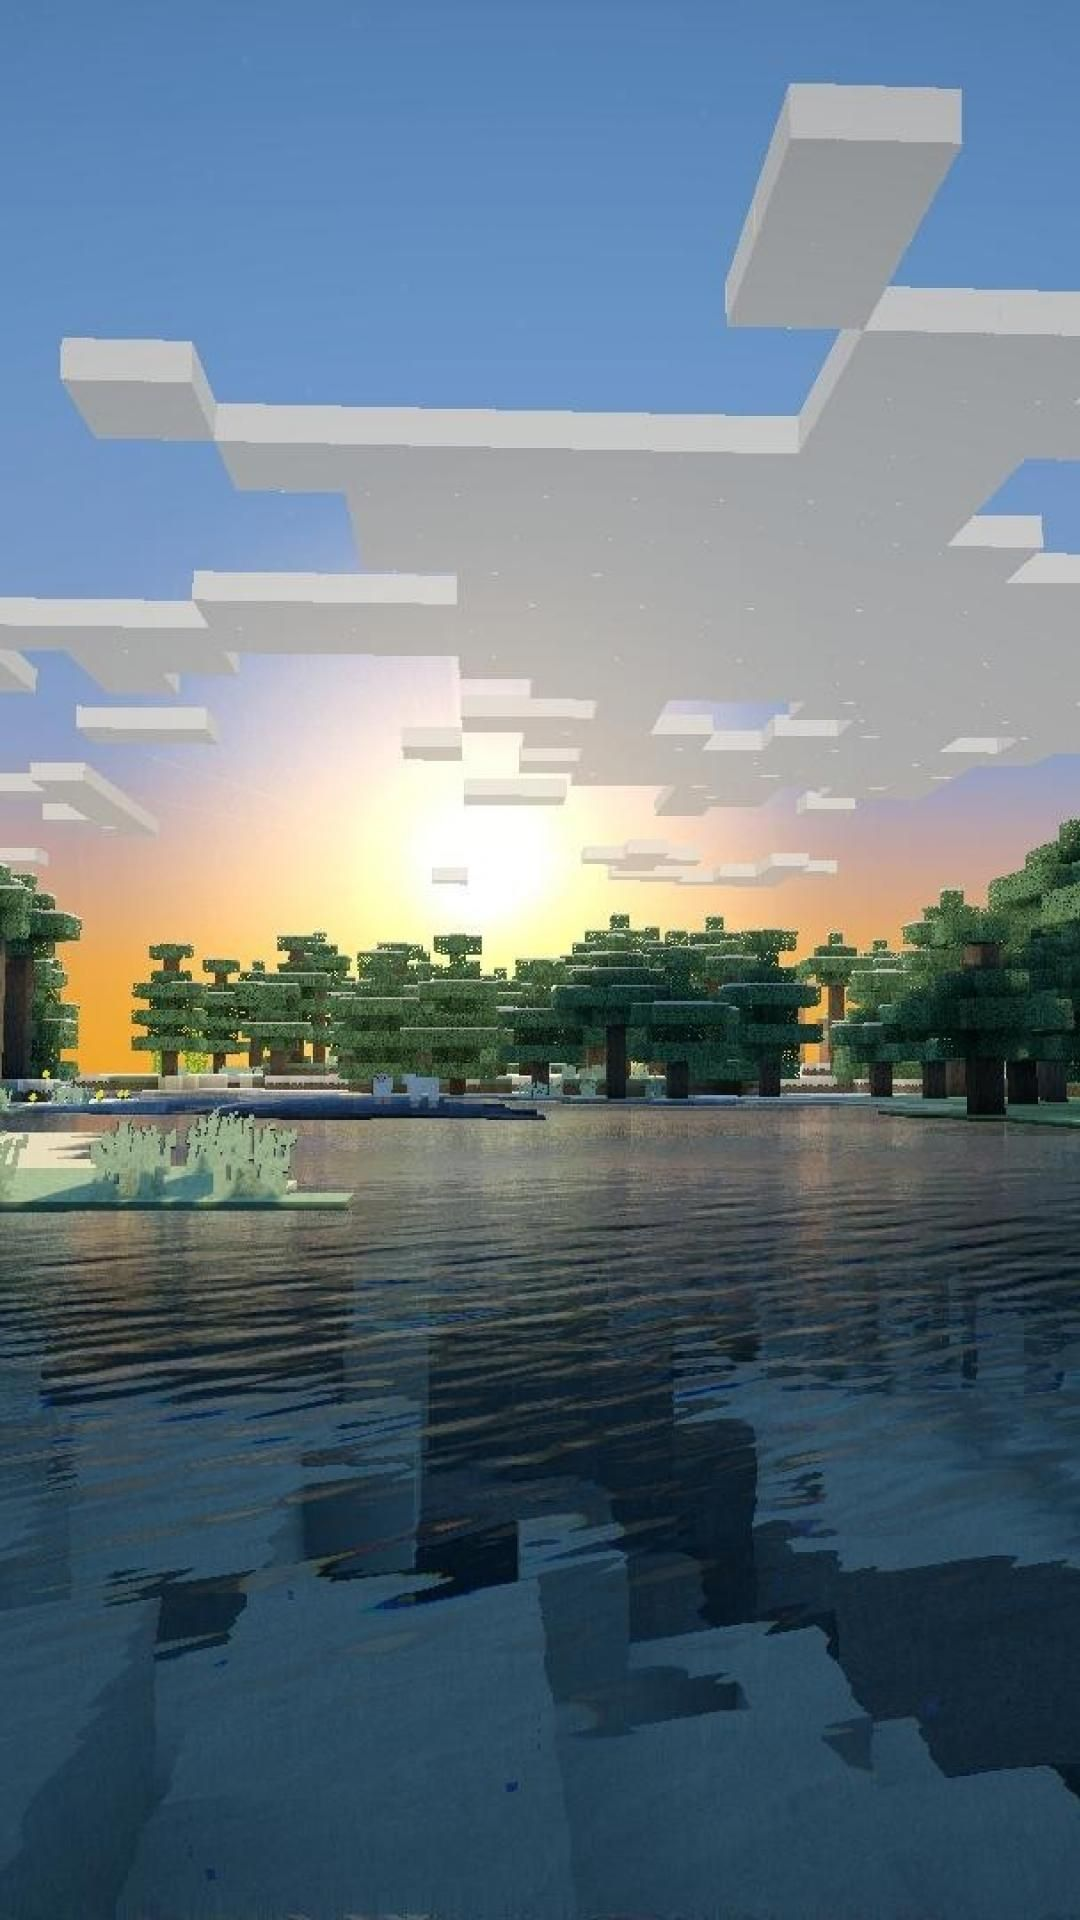 Best Minecraft Wallpaper Kolpaper Awesome Free Hd Wallpapers